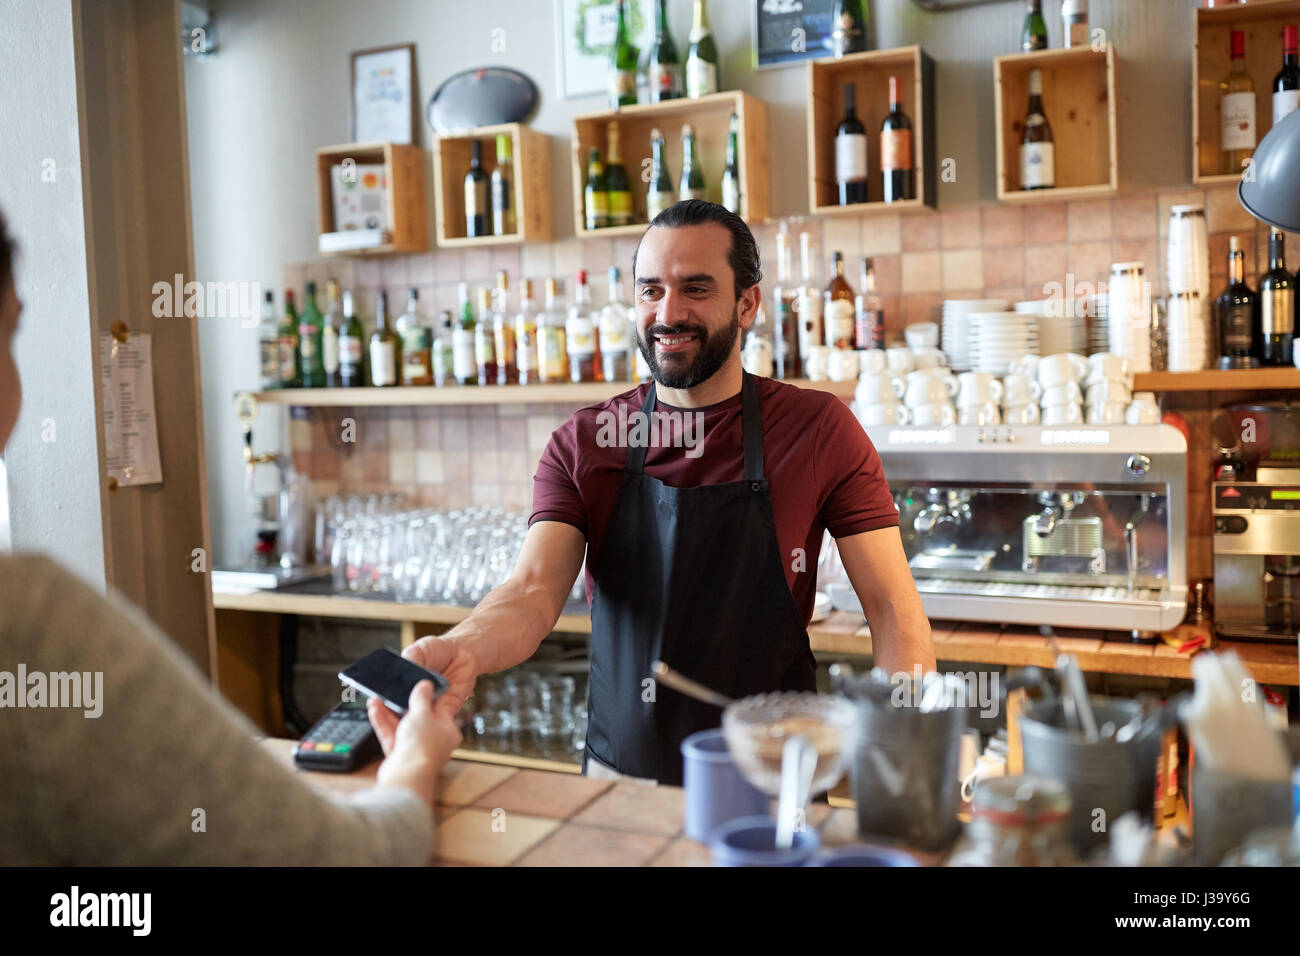 barman and woman with card reader and smartphone - Stock Image